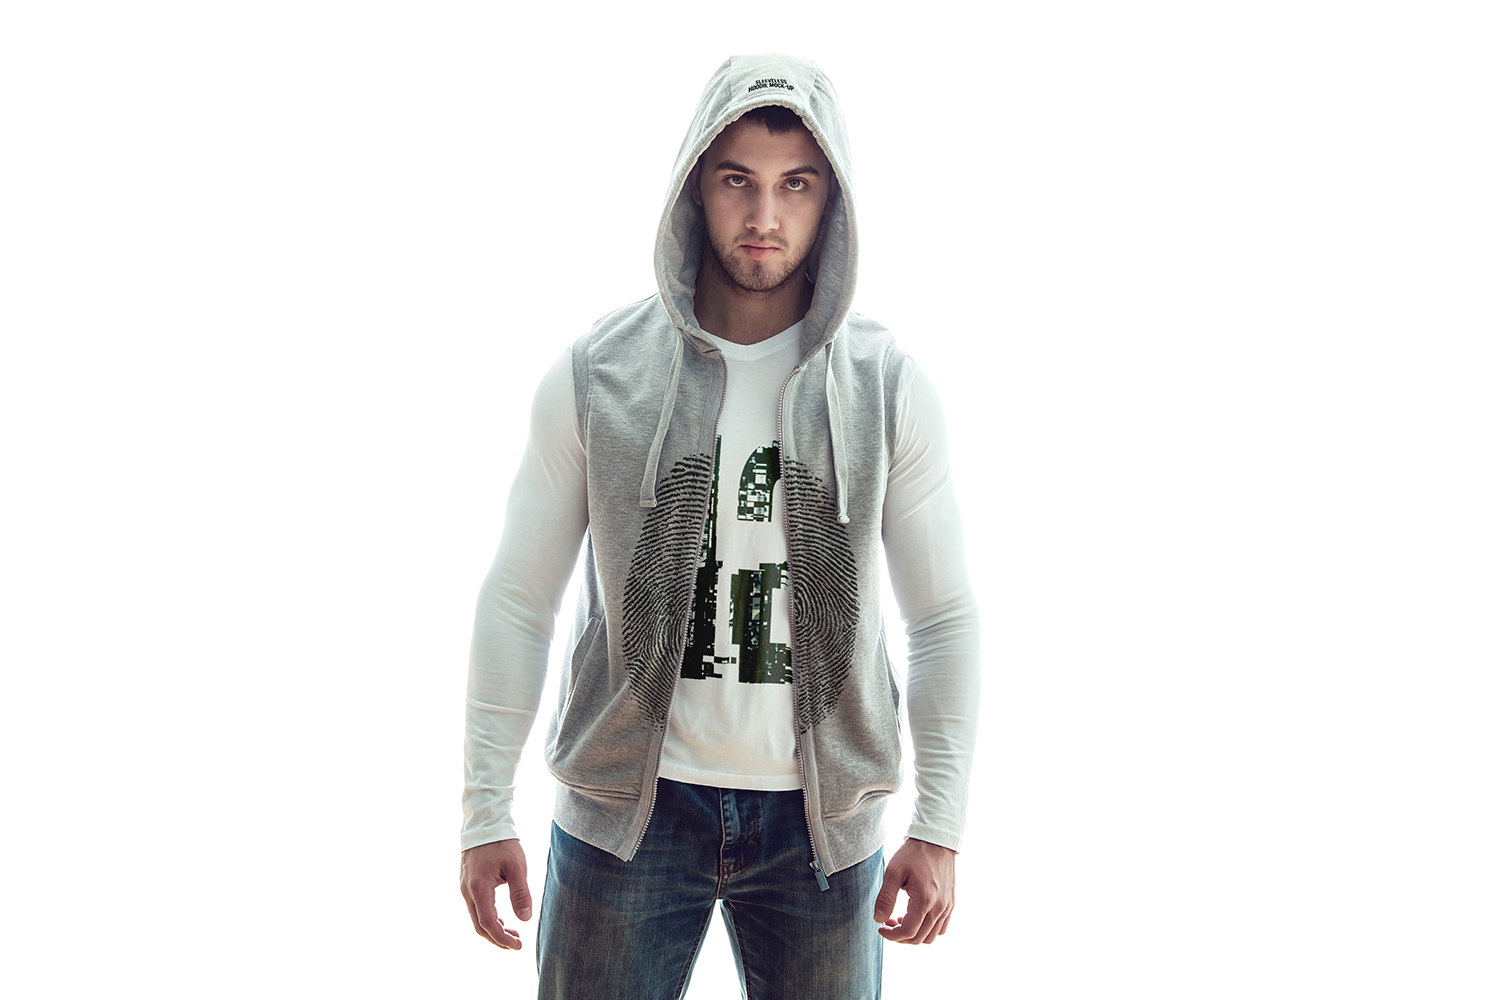 Sleeveless Hoodie Mock-Up example image 5